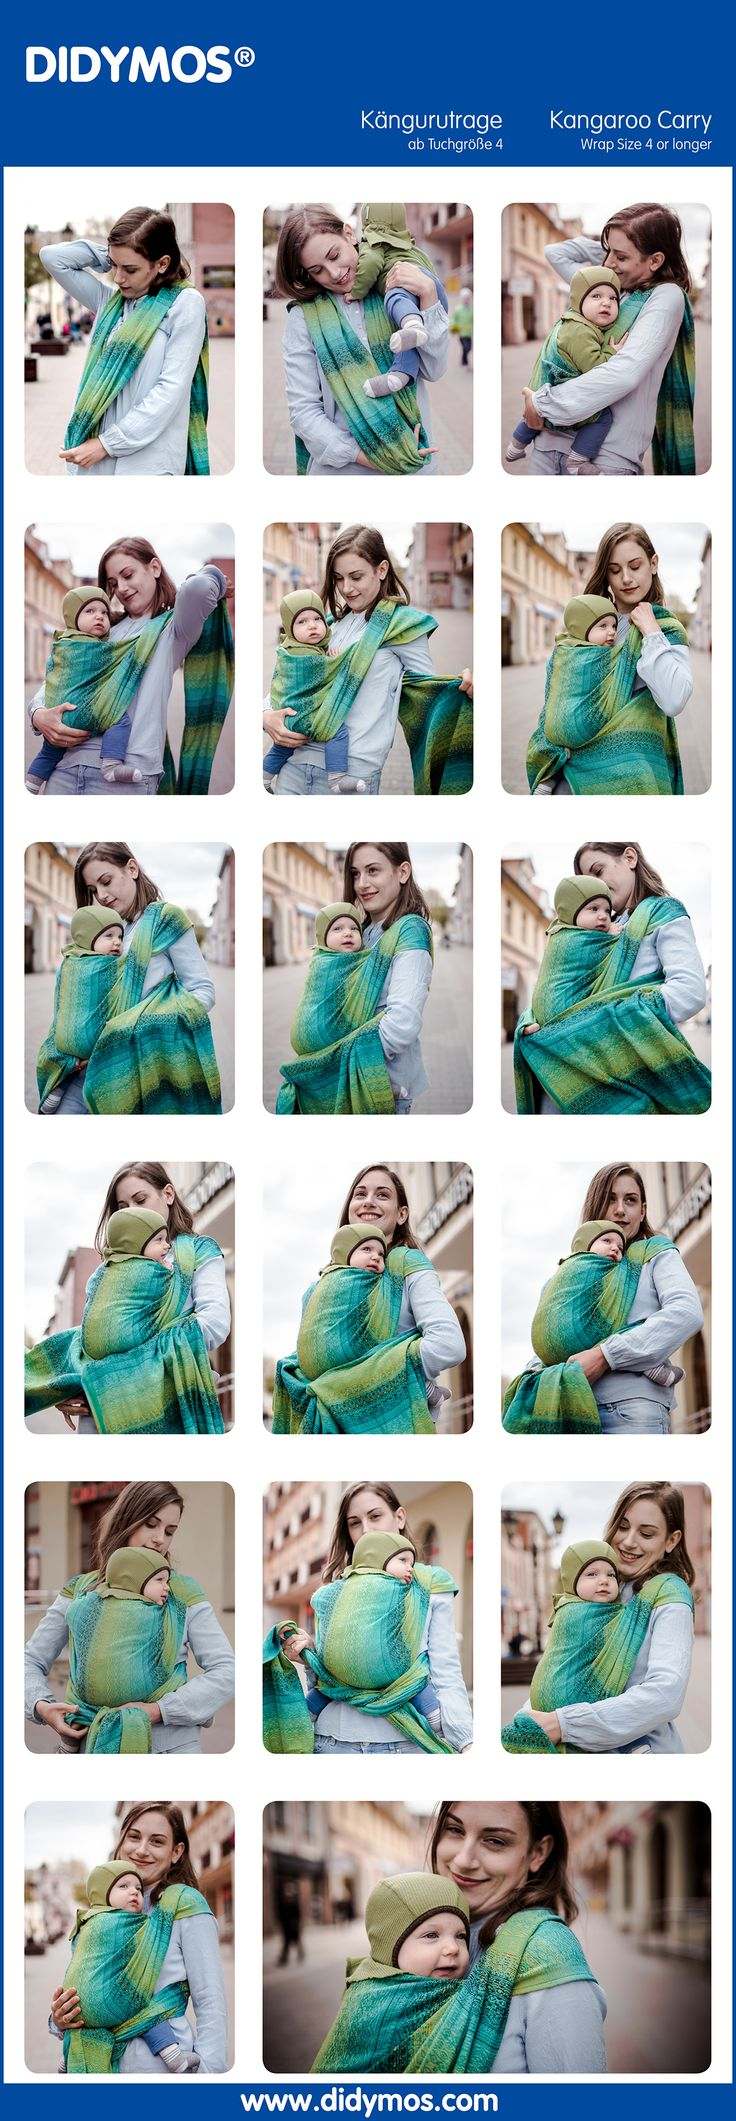 "DIDYMOS Kangaroo Carry with a Woven Wrap ""Ada Malachit"" - Kängurutrage  #TyingInstructions #diymos"